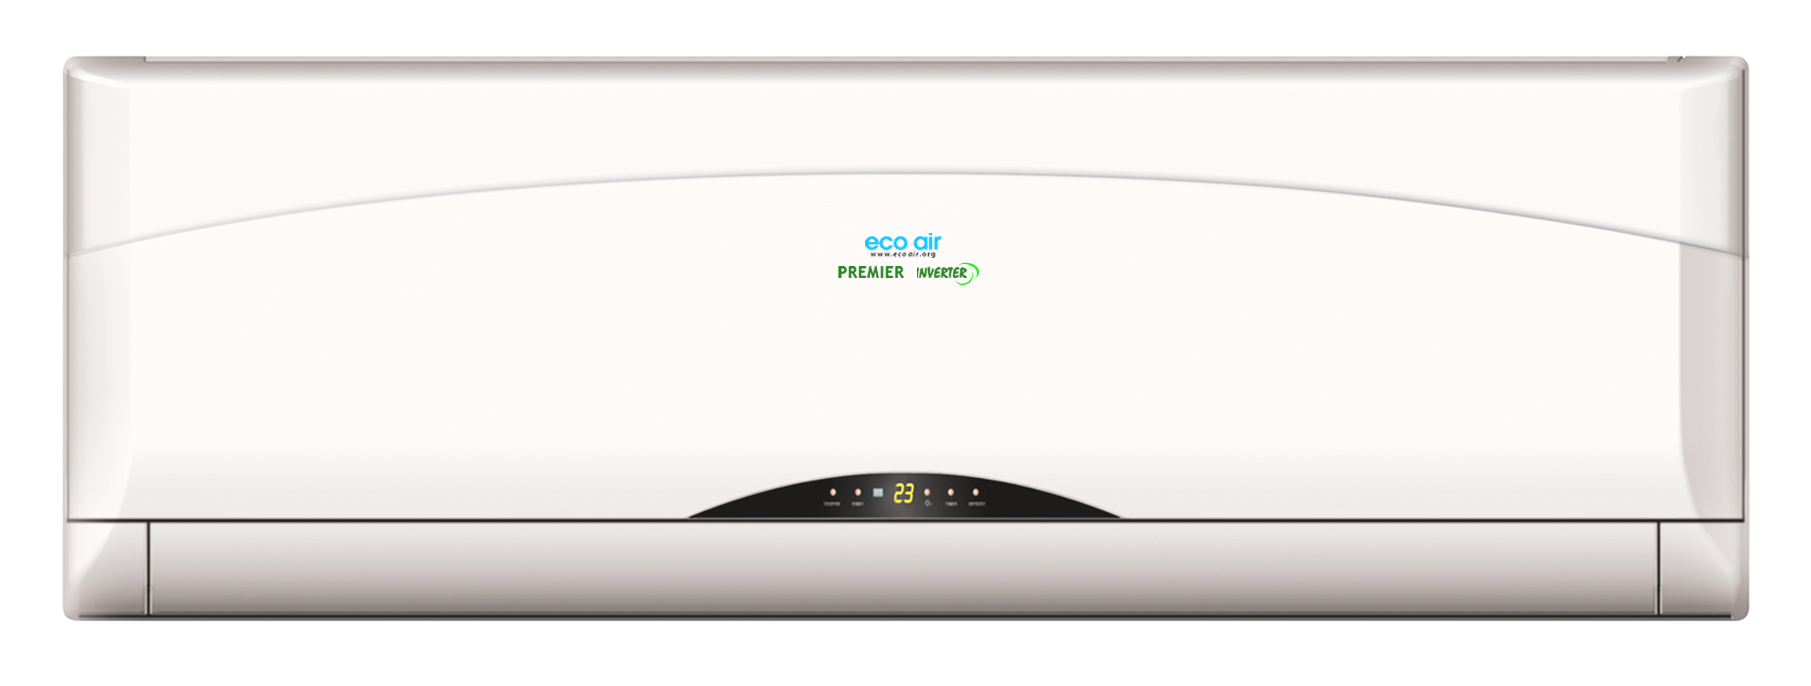 Premier-Inverter-Air-Conditioning-Indoor